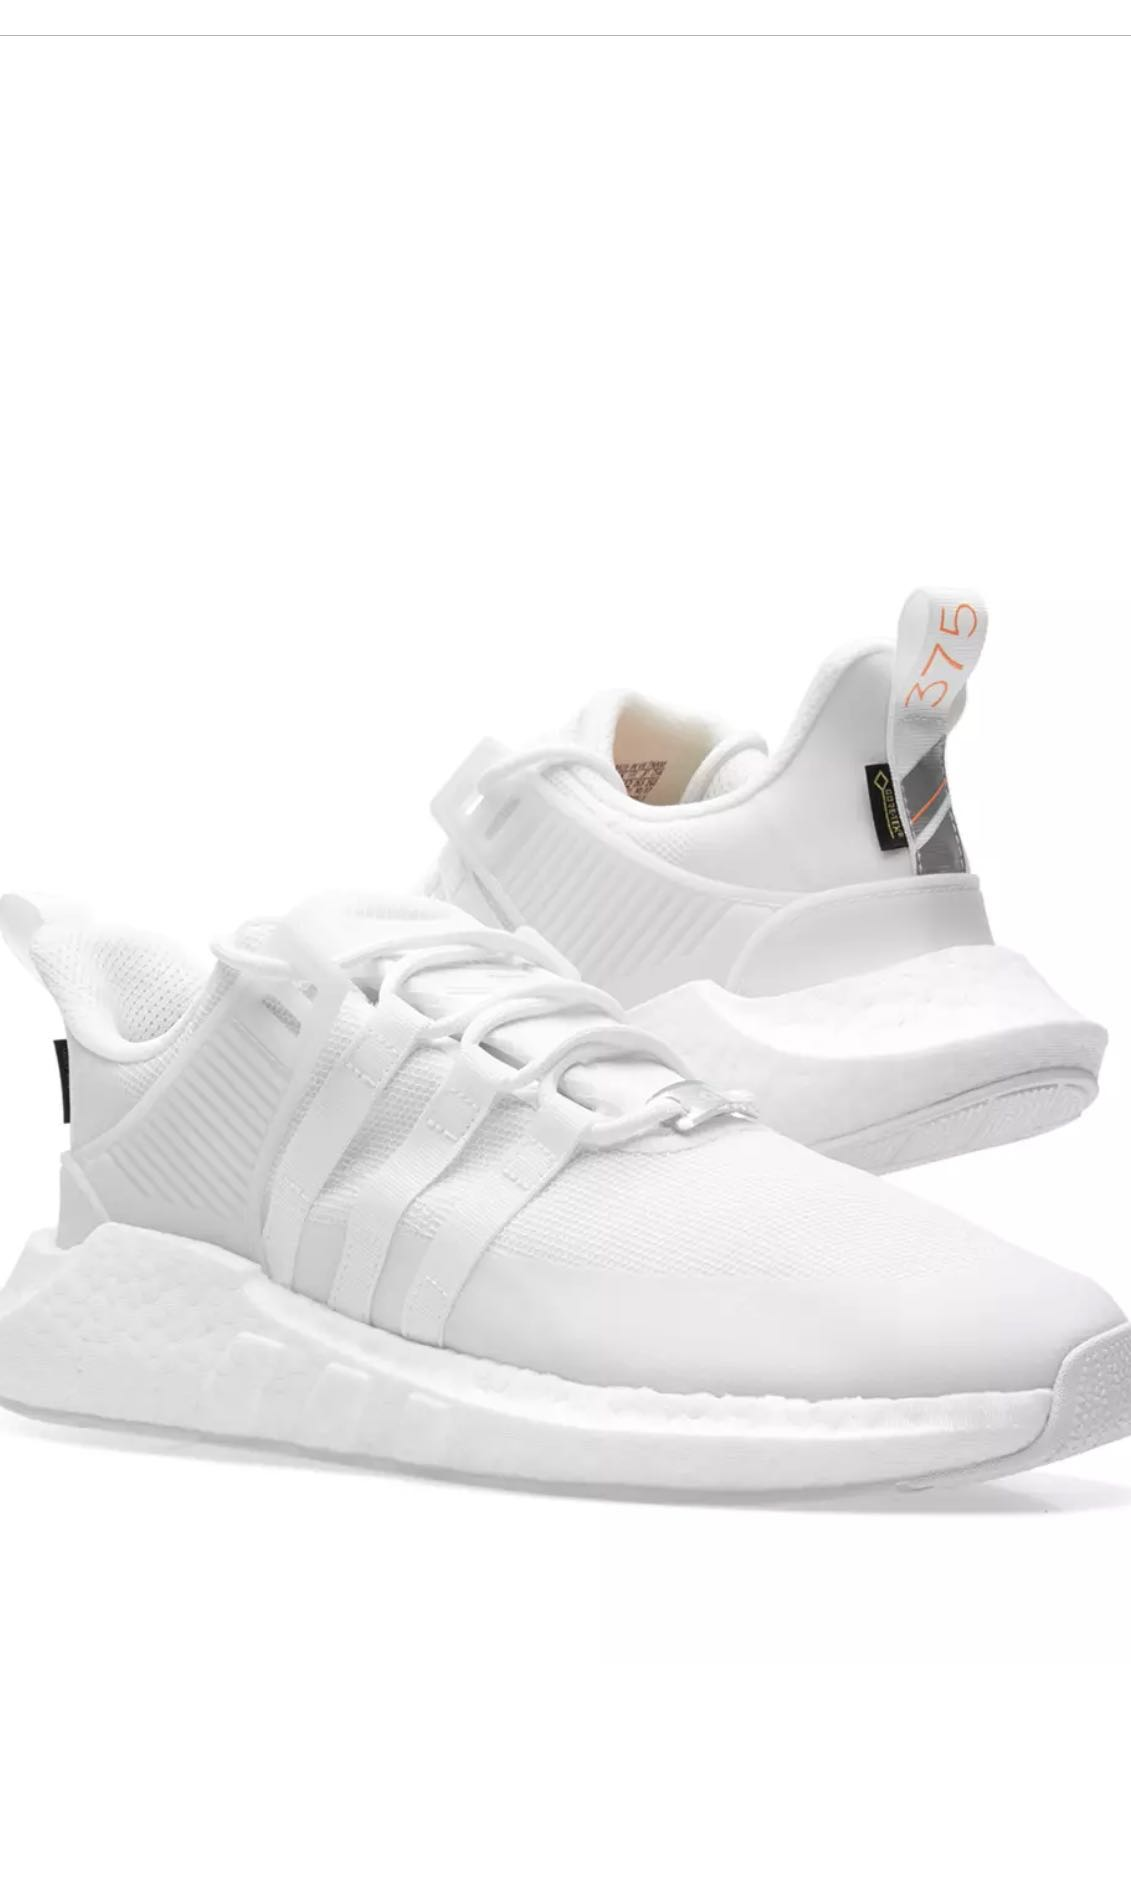 the latest 35f2d 08213 Adidas EQT Support 93/17 GTX, Men's Fashion, Footwear on ...